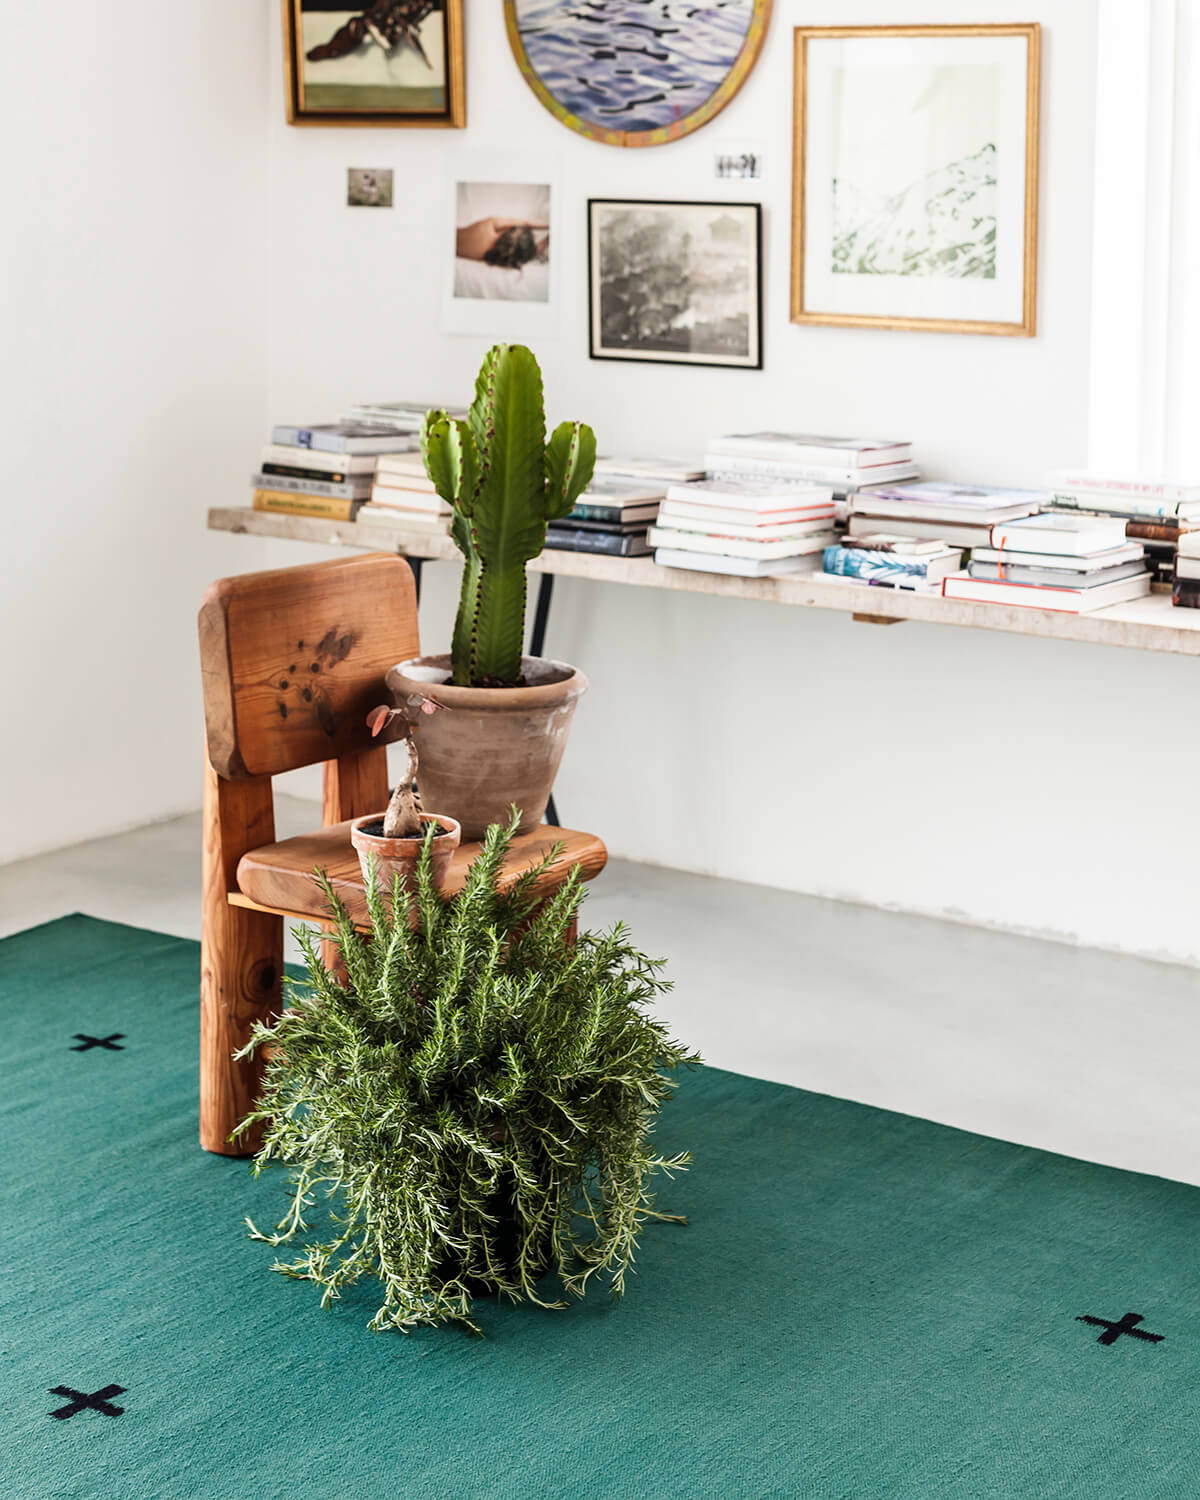 Green Plus displayed indoors with a wooden chair and a potted fern.